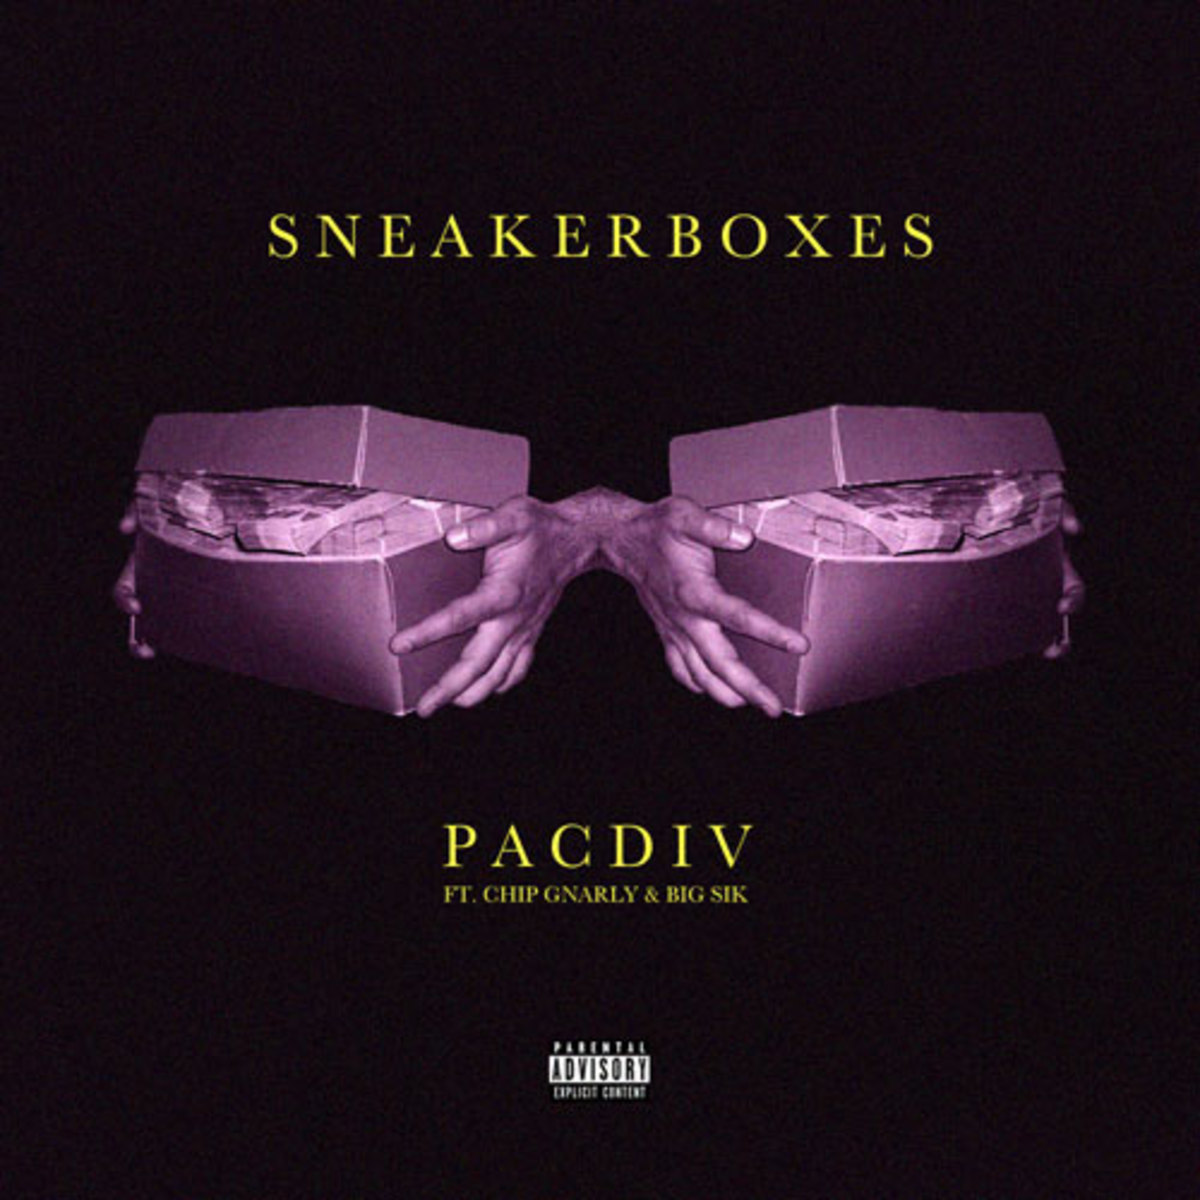 pacdiv-sneakerboxes.jpg